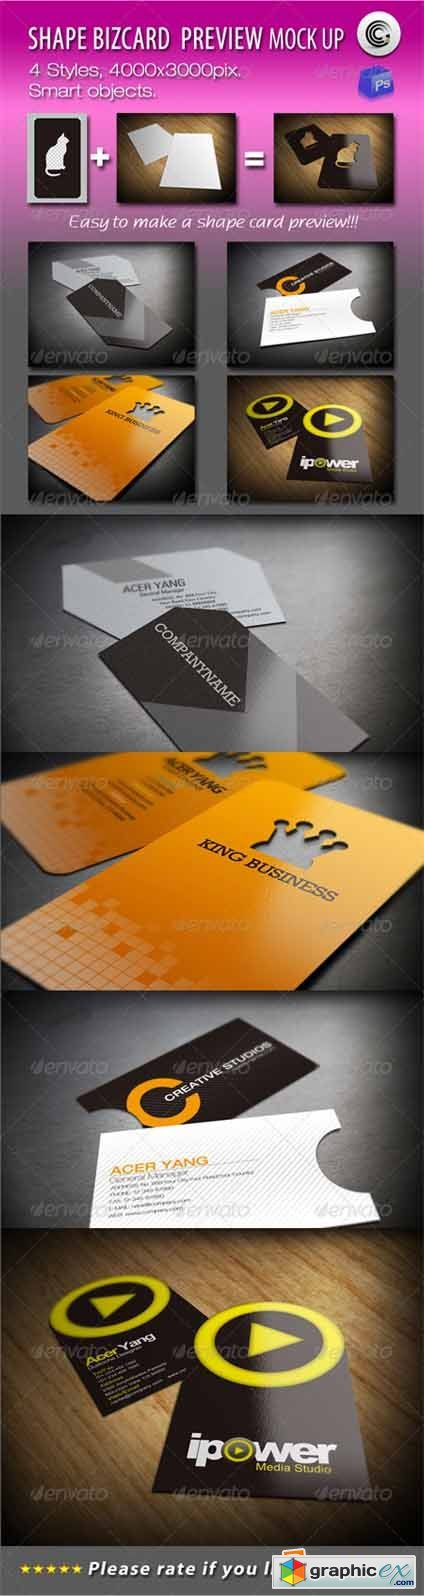 Shape BizCard Preview Mock-ups 751908